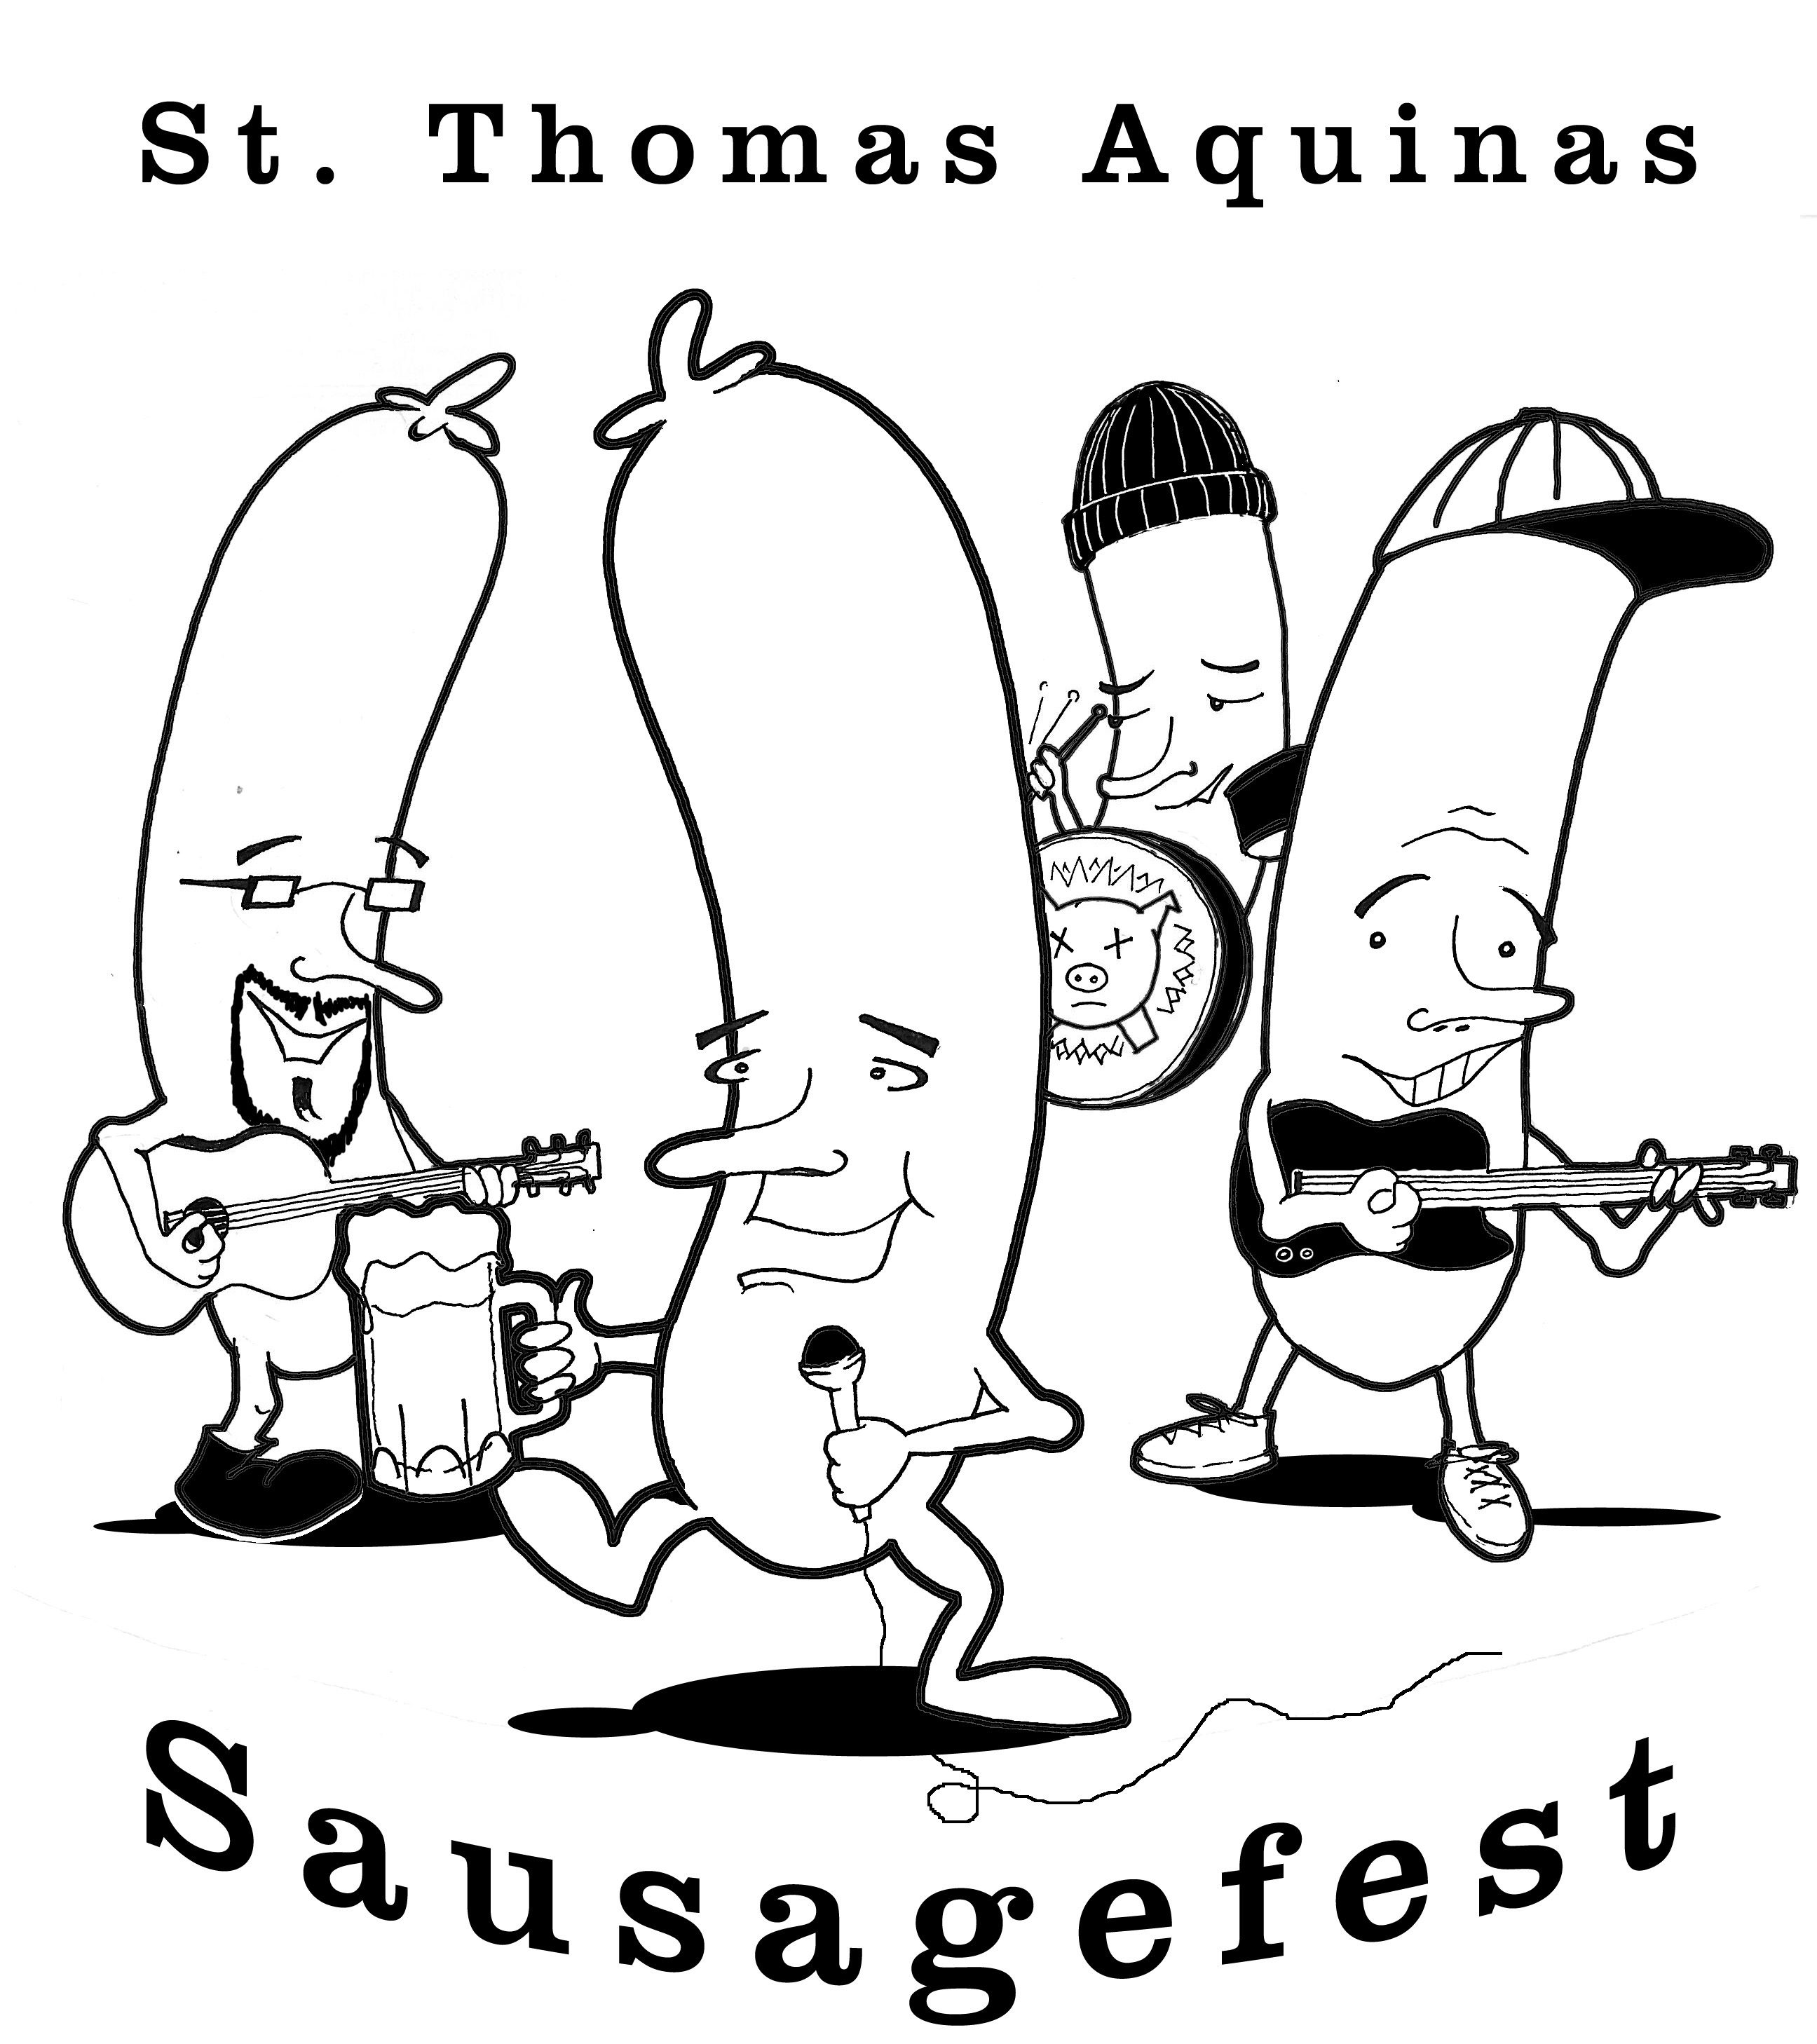 Sign up for Sausage Fest 2019!